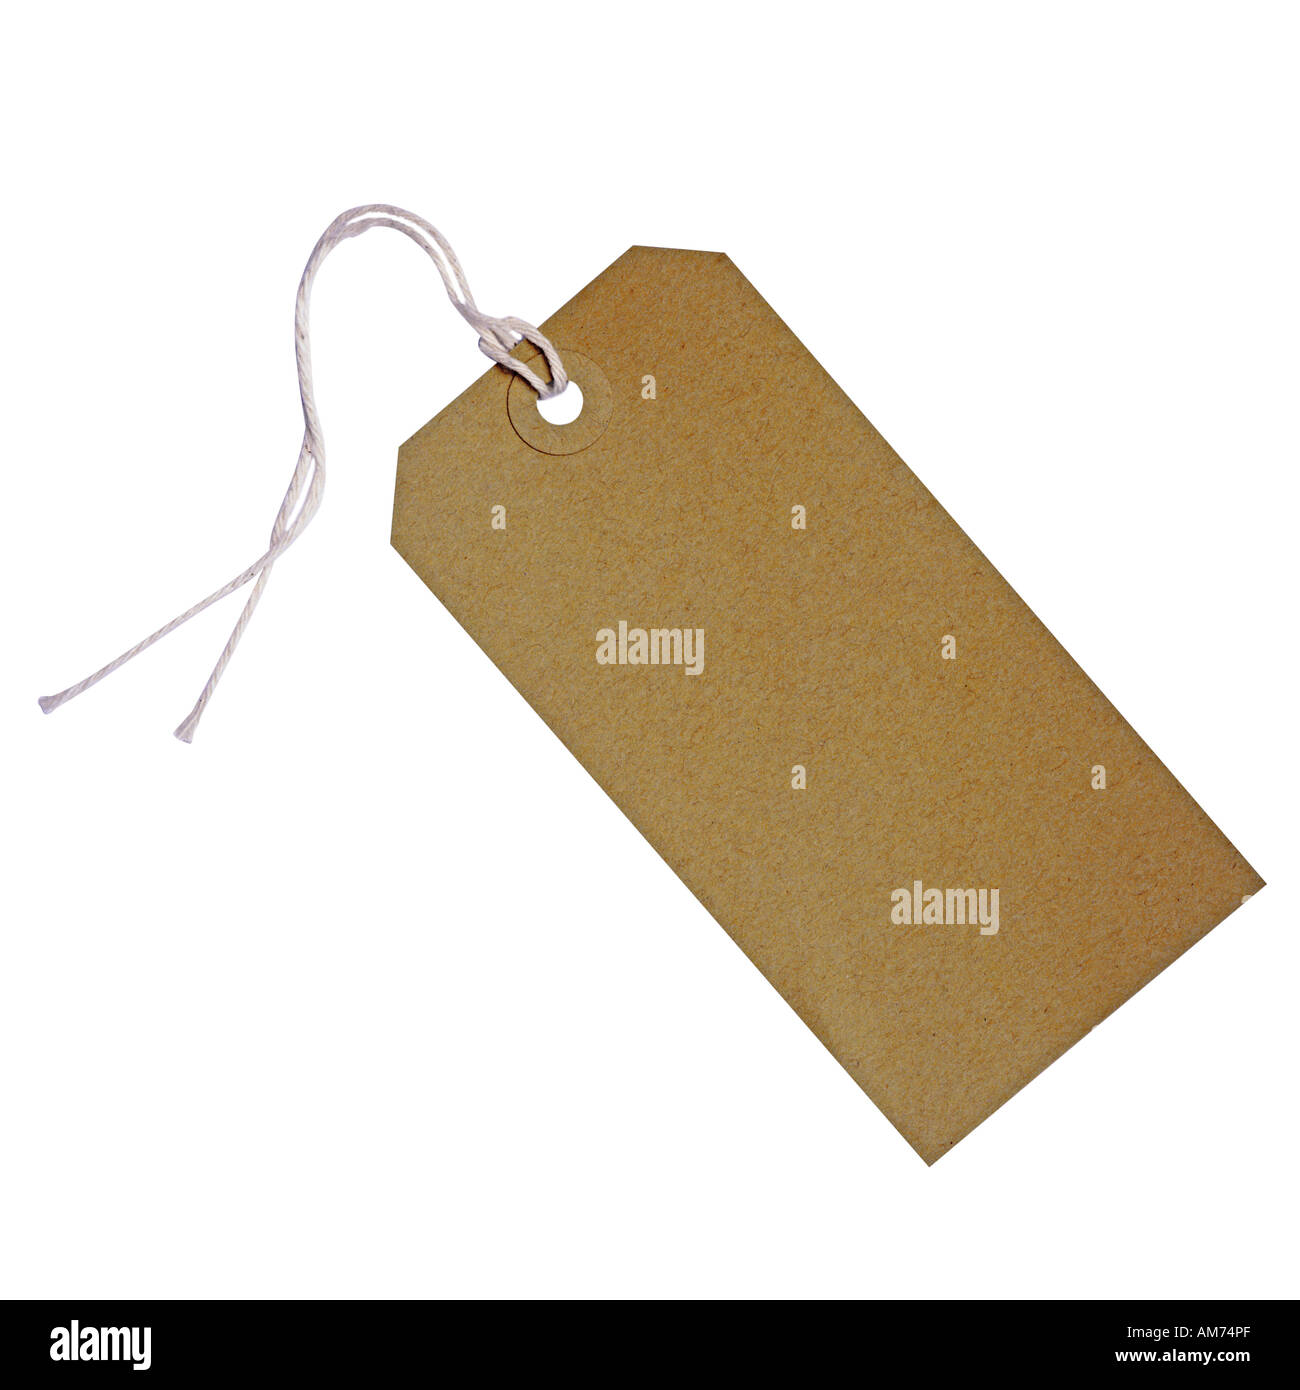 A brown paper luggage tag - Stock Image